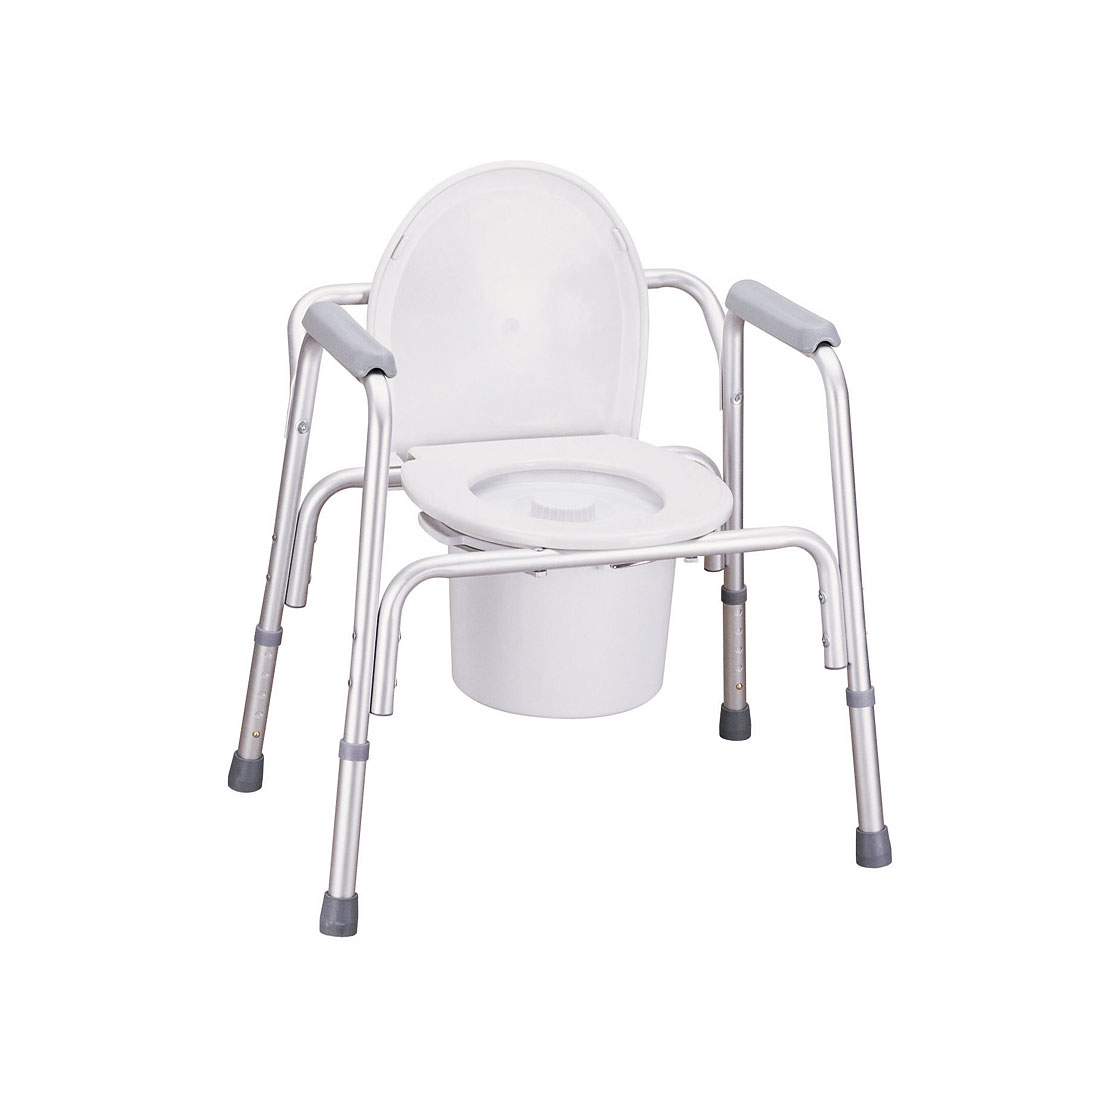 Over Toilet Aluminium Commode Chair - Aluminium Commode Chair